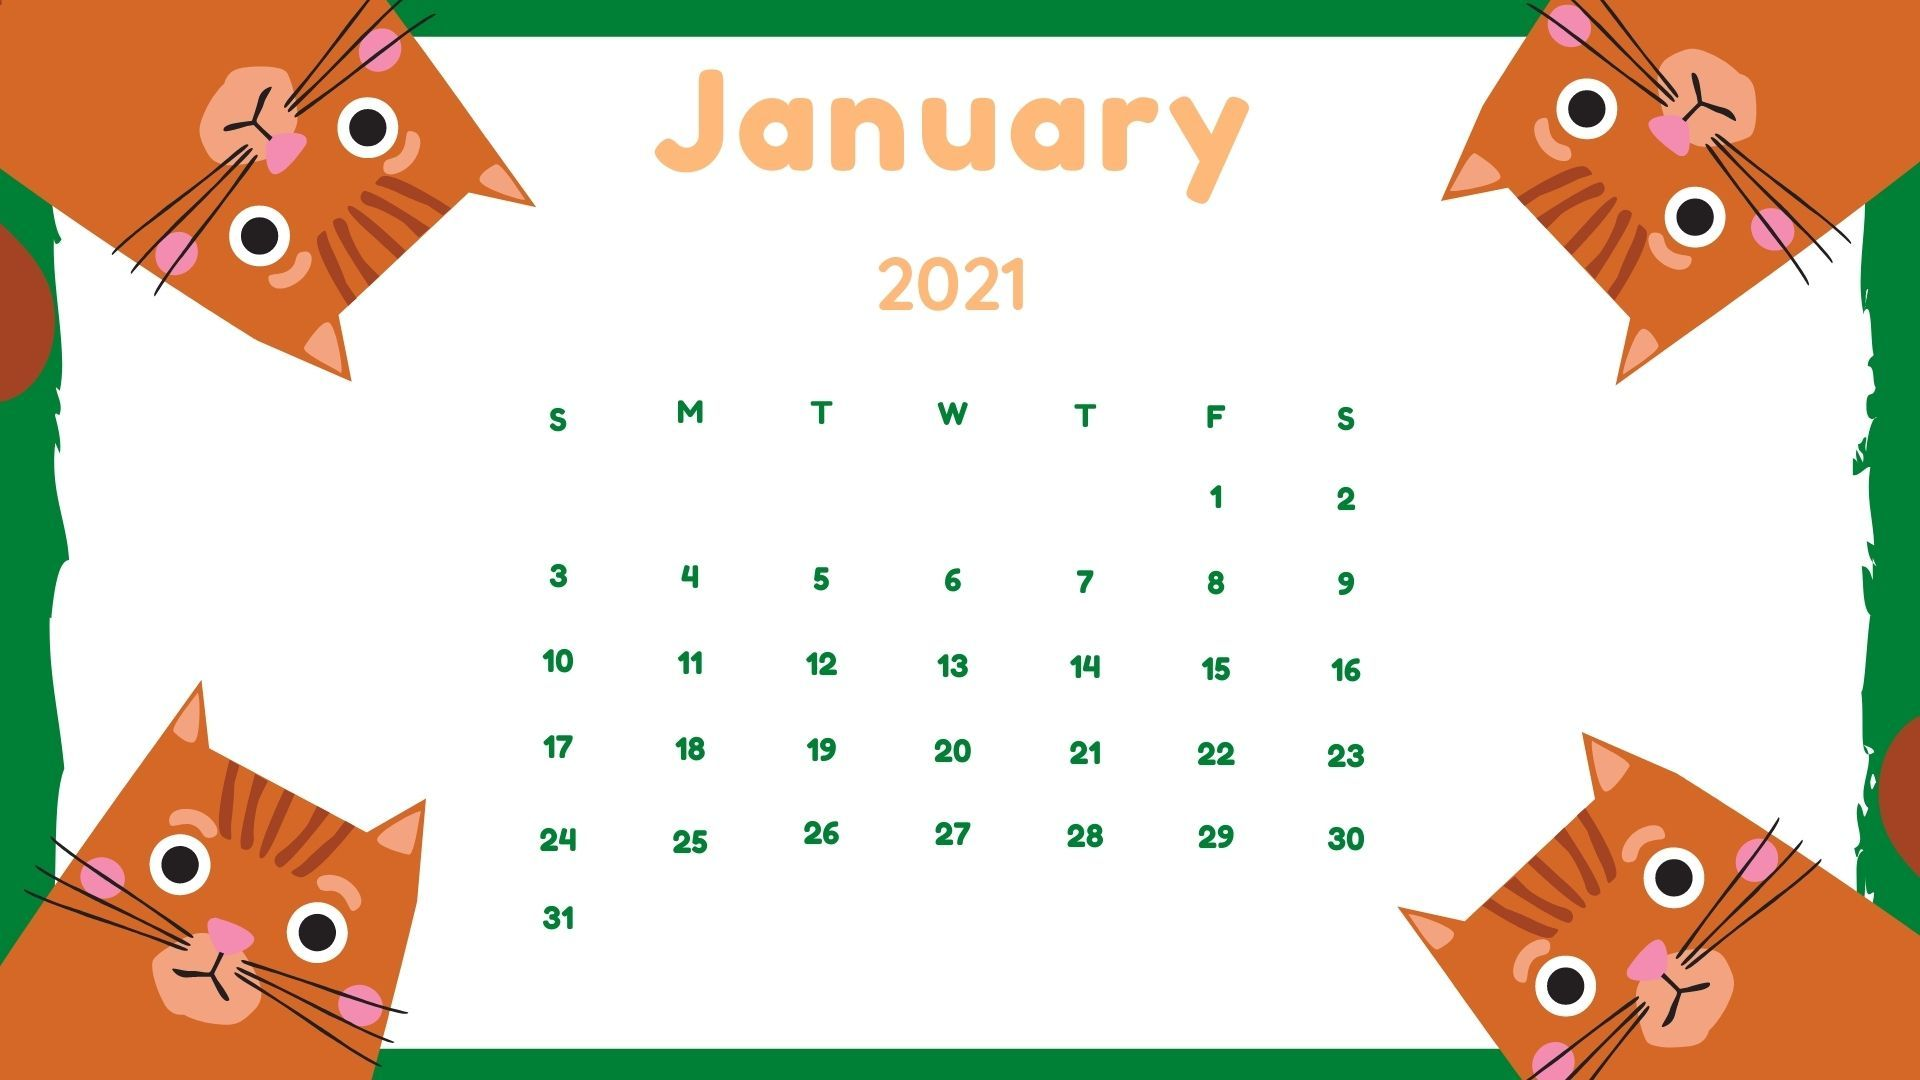 January 2021 Calendar Wallpaper For Desktop